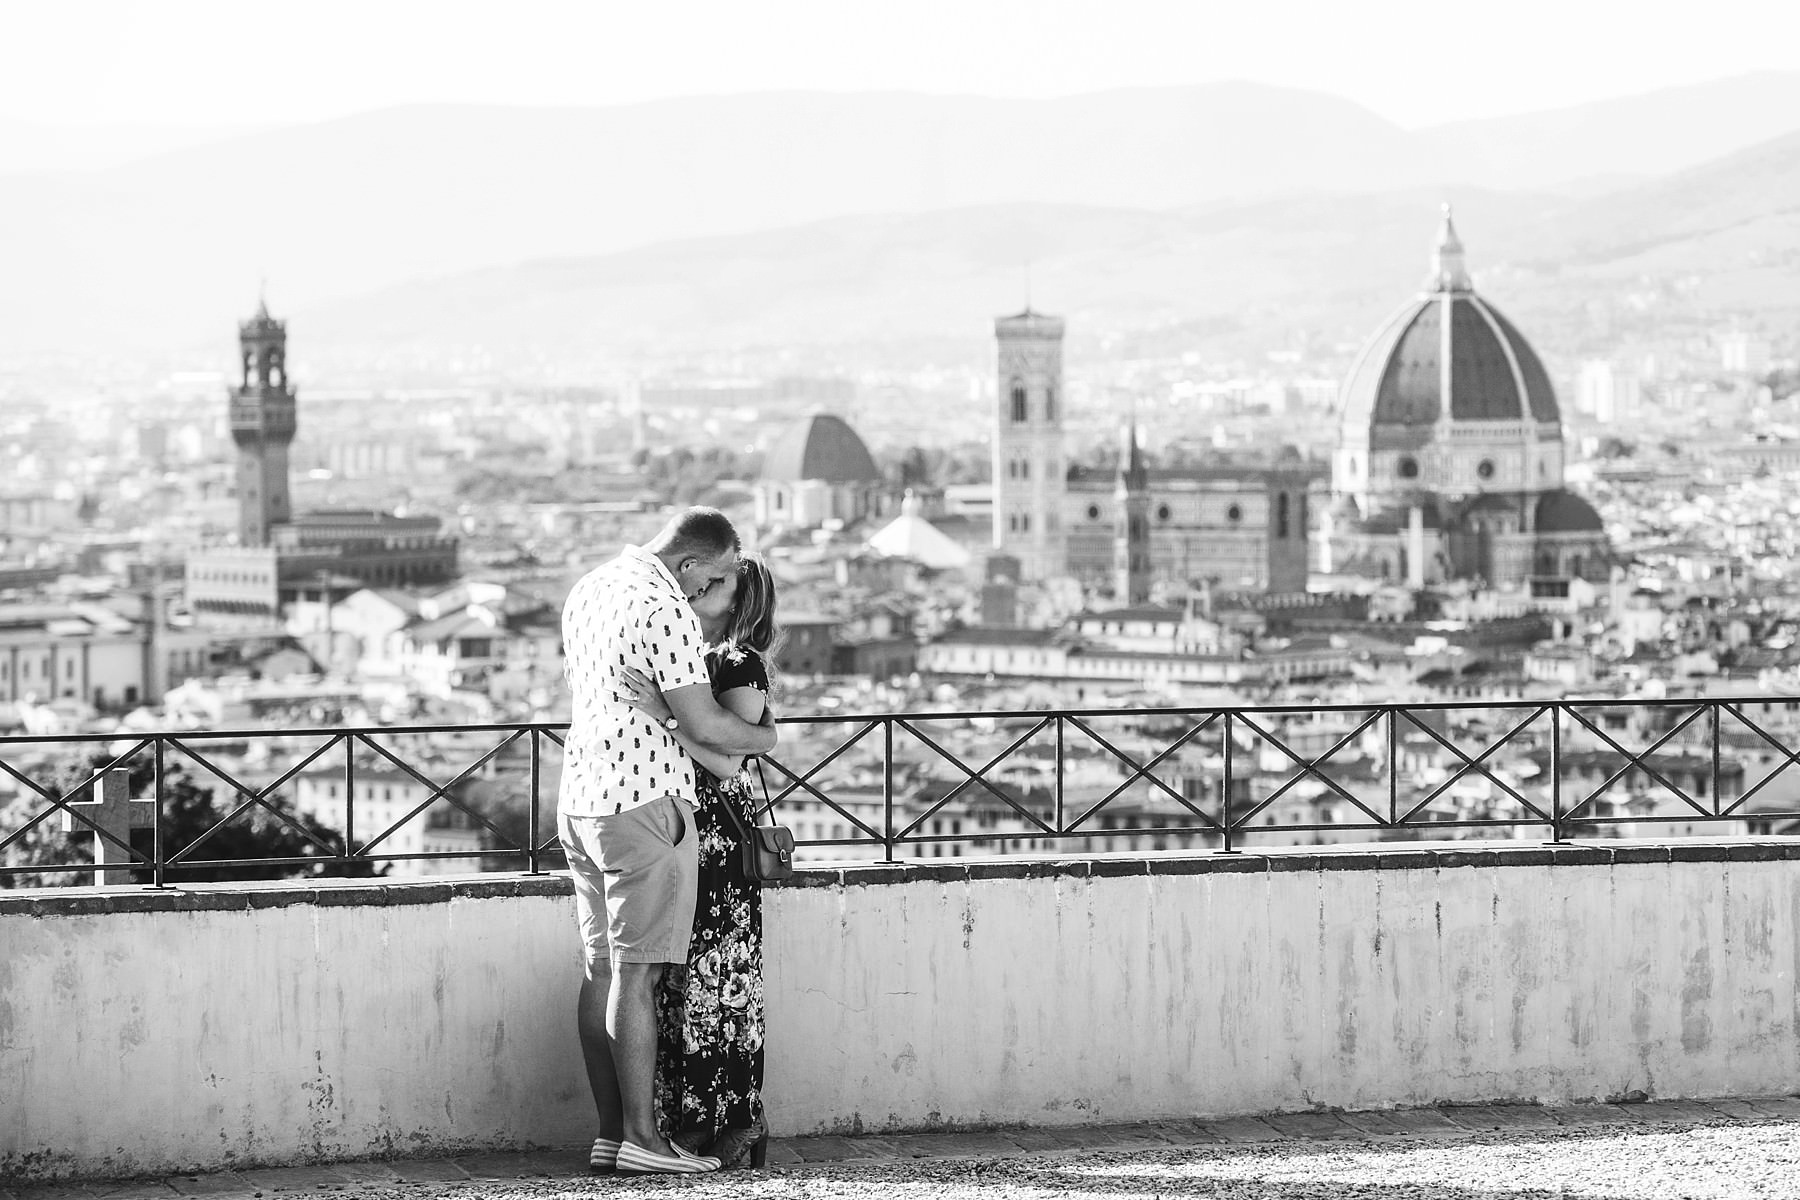 Romantic surprise proposal photo shoot in Florence at San Miniato the most beautiful panoramic place in the city. Audio video recording of the proposal is available as optional